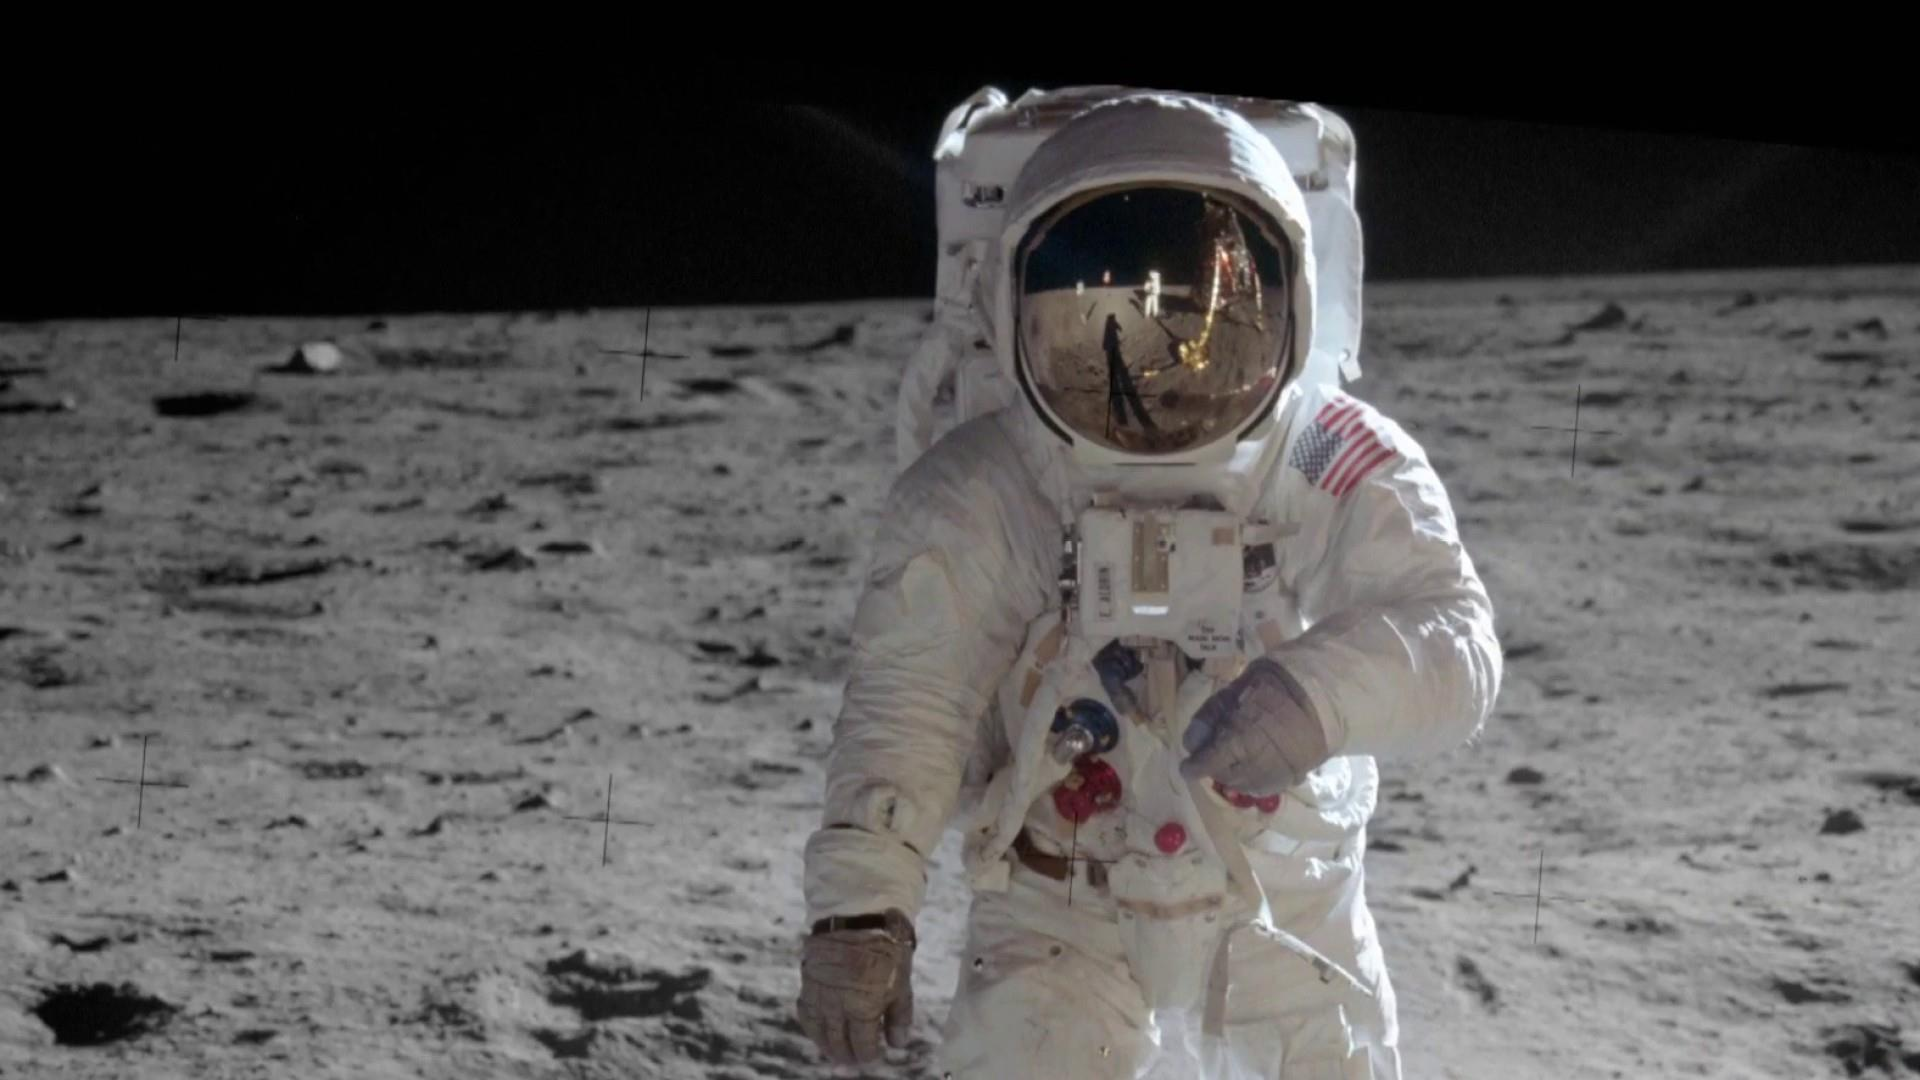 As Apollo 11 landing turns 50, a look back